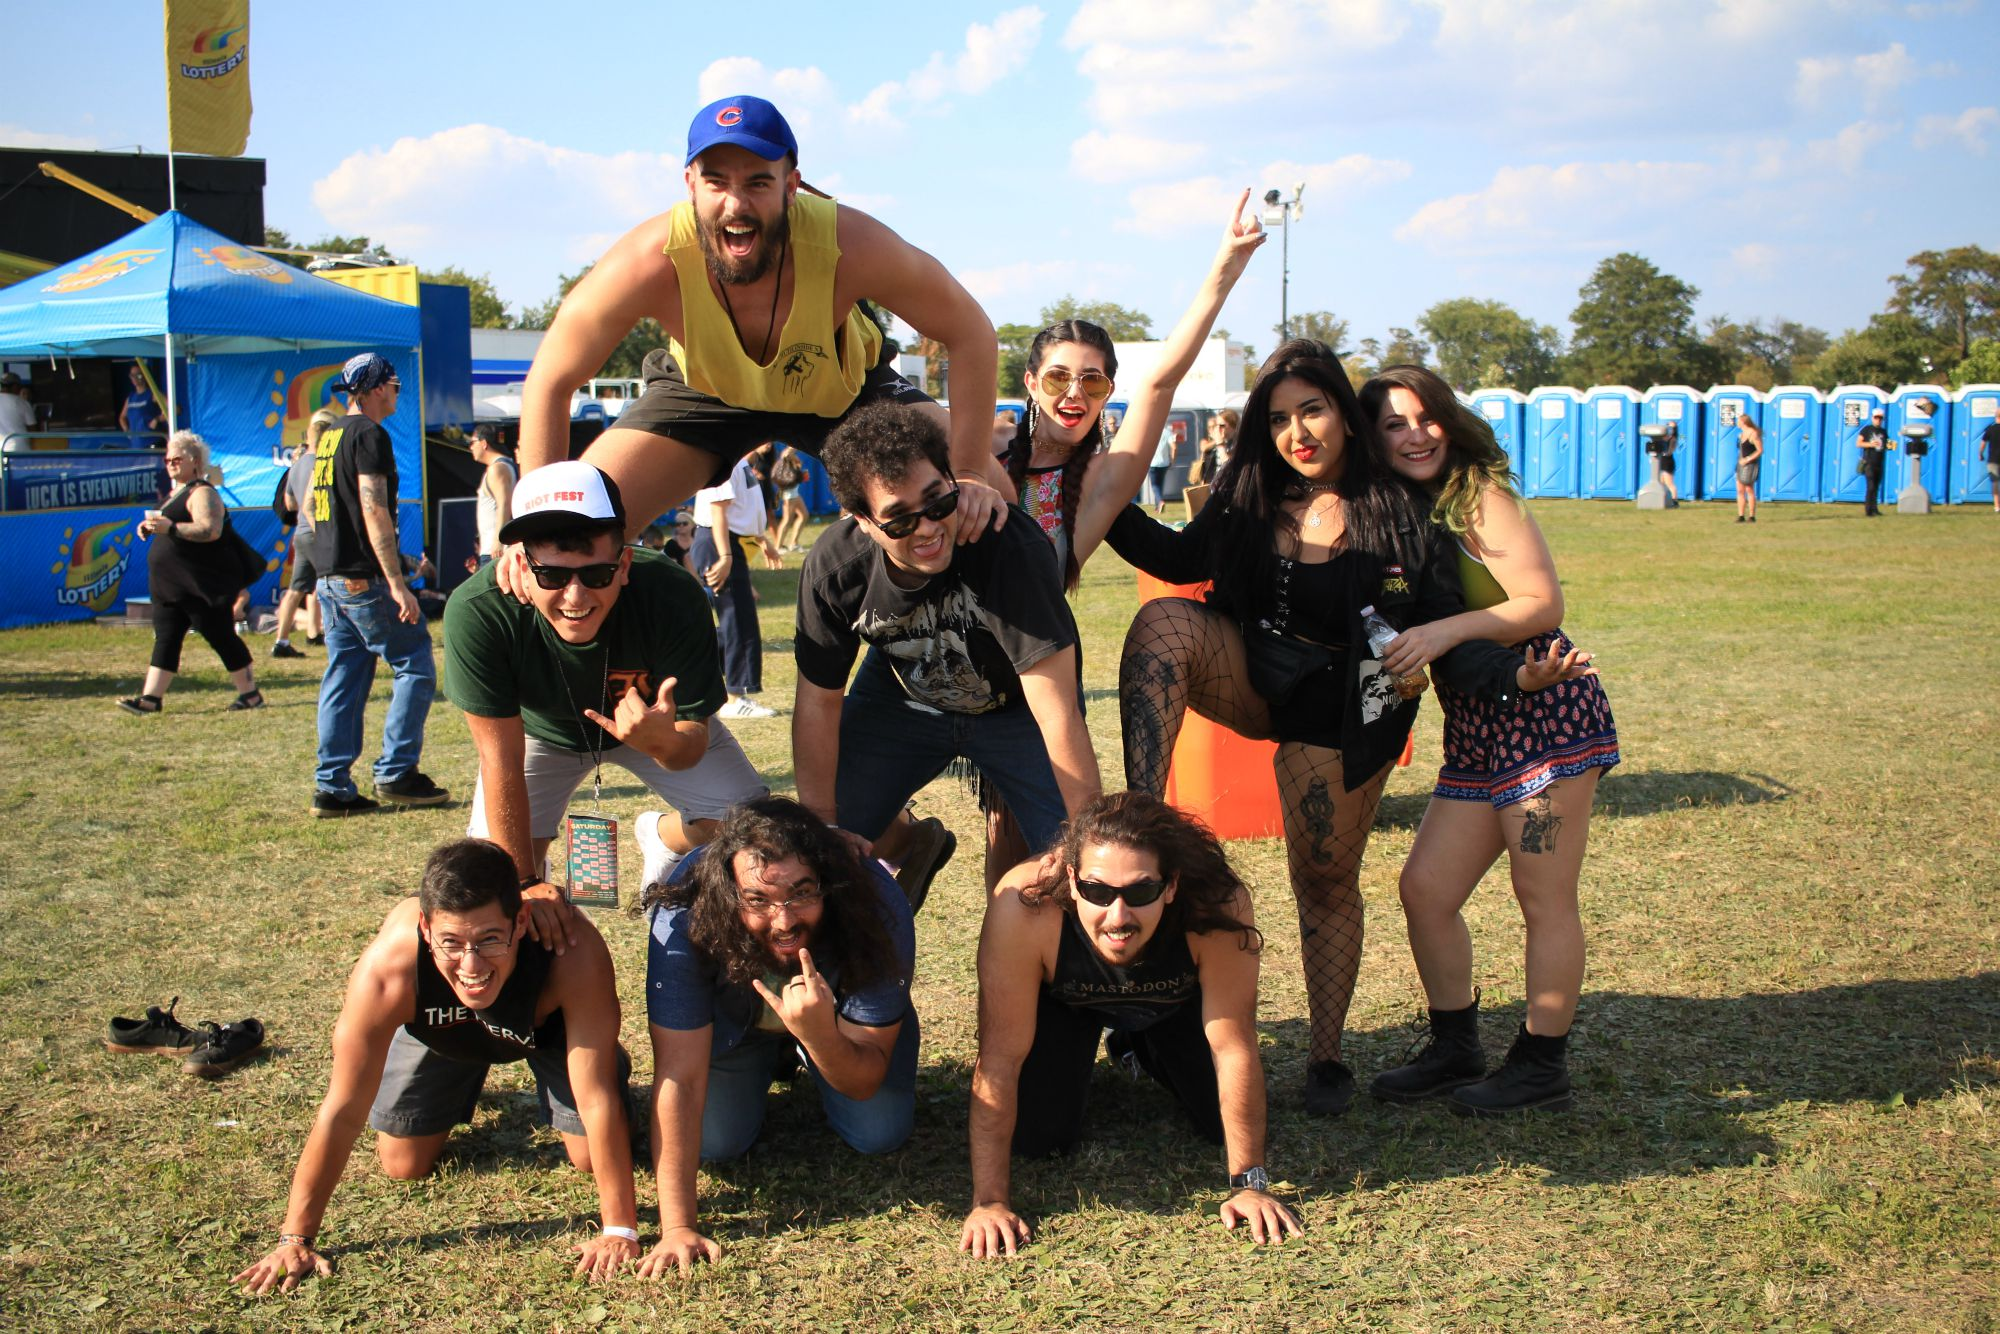 kaplan riot fest saturday misc 7 Riot Fest 2017 Festival Review: From Worst to Best